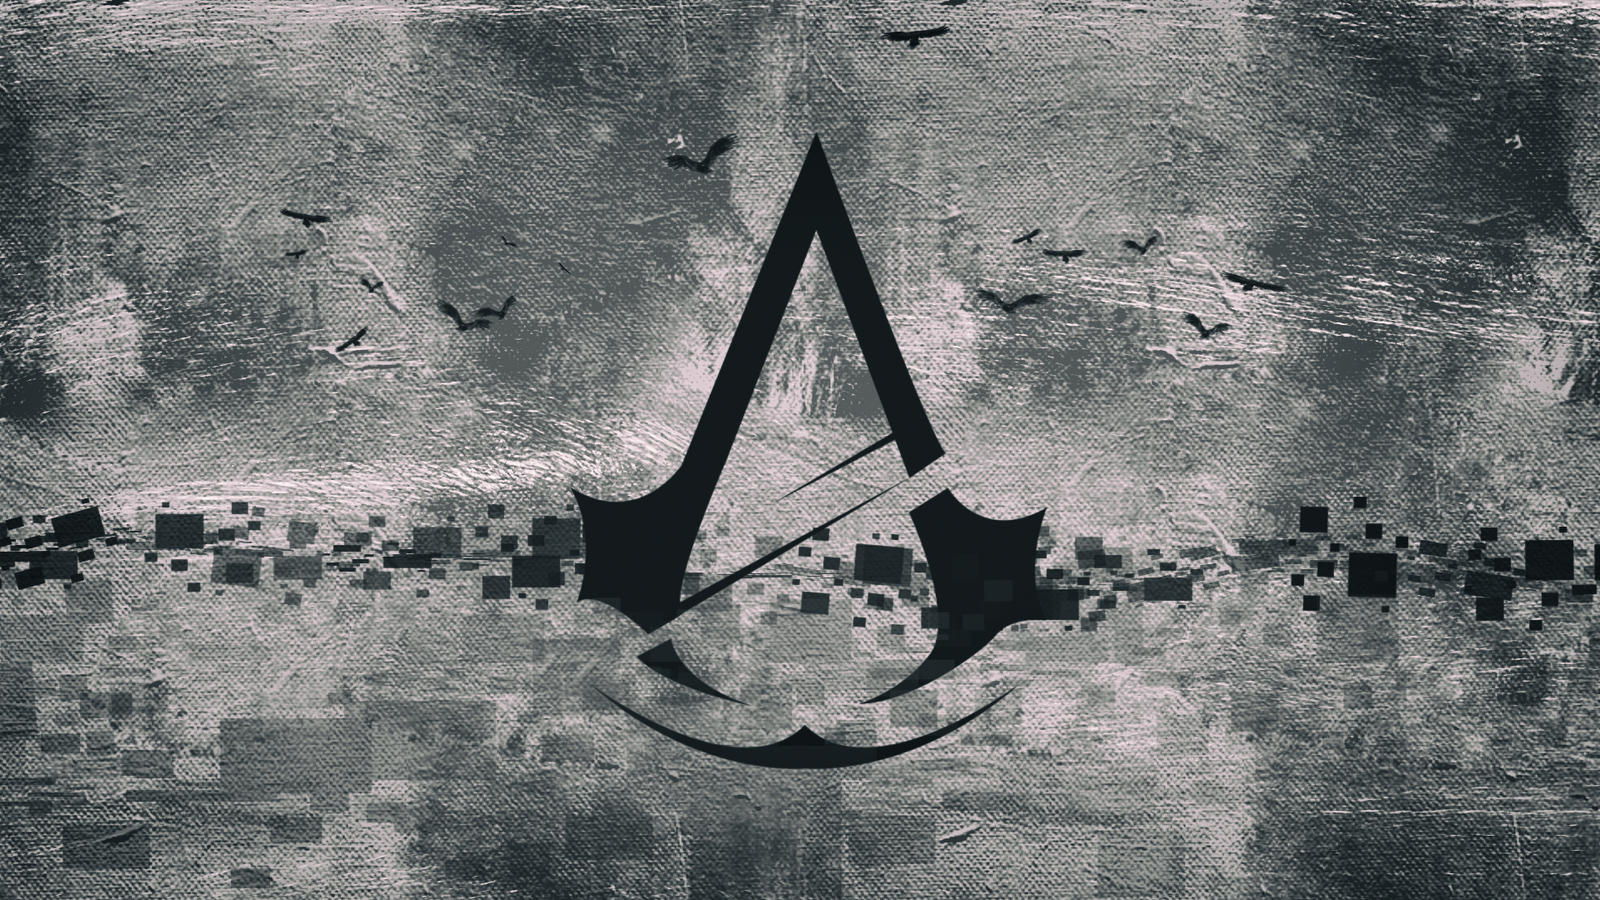 Assassins creed unity black wallpaper by binary map on deviantart assassins creed unity black wallpaper by binary map voltagebd Image collections